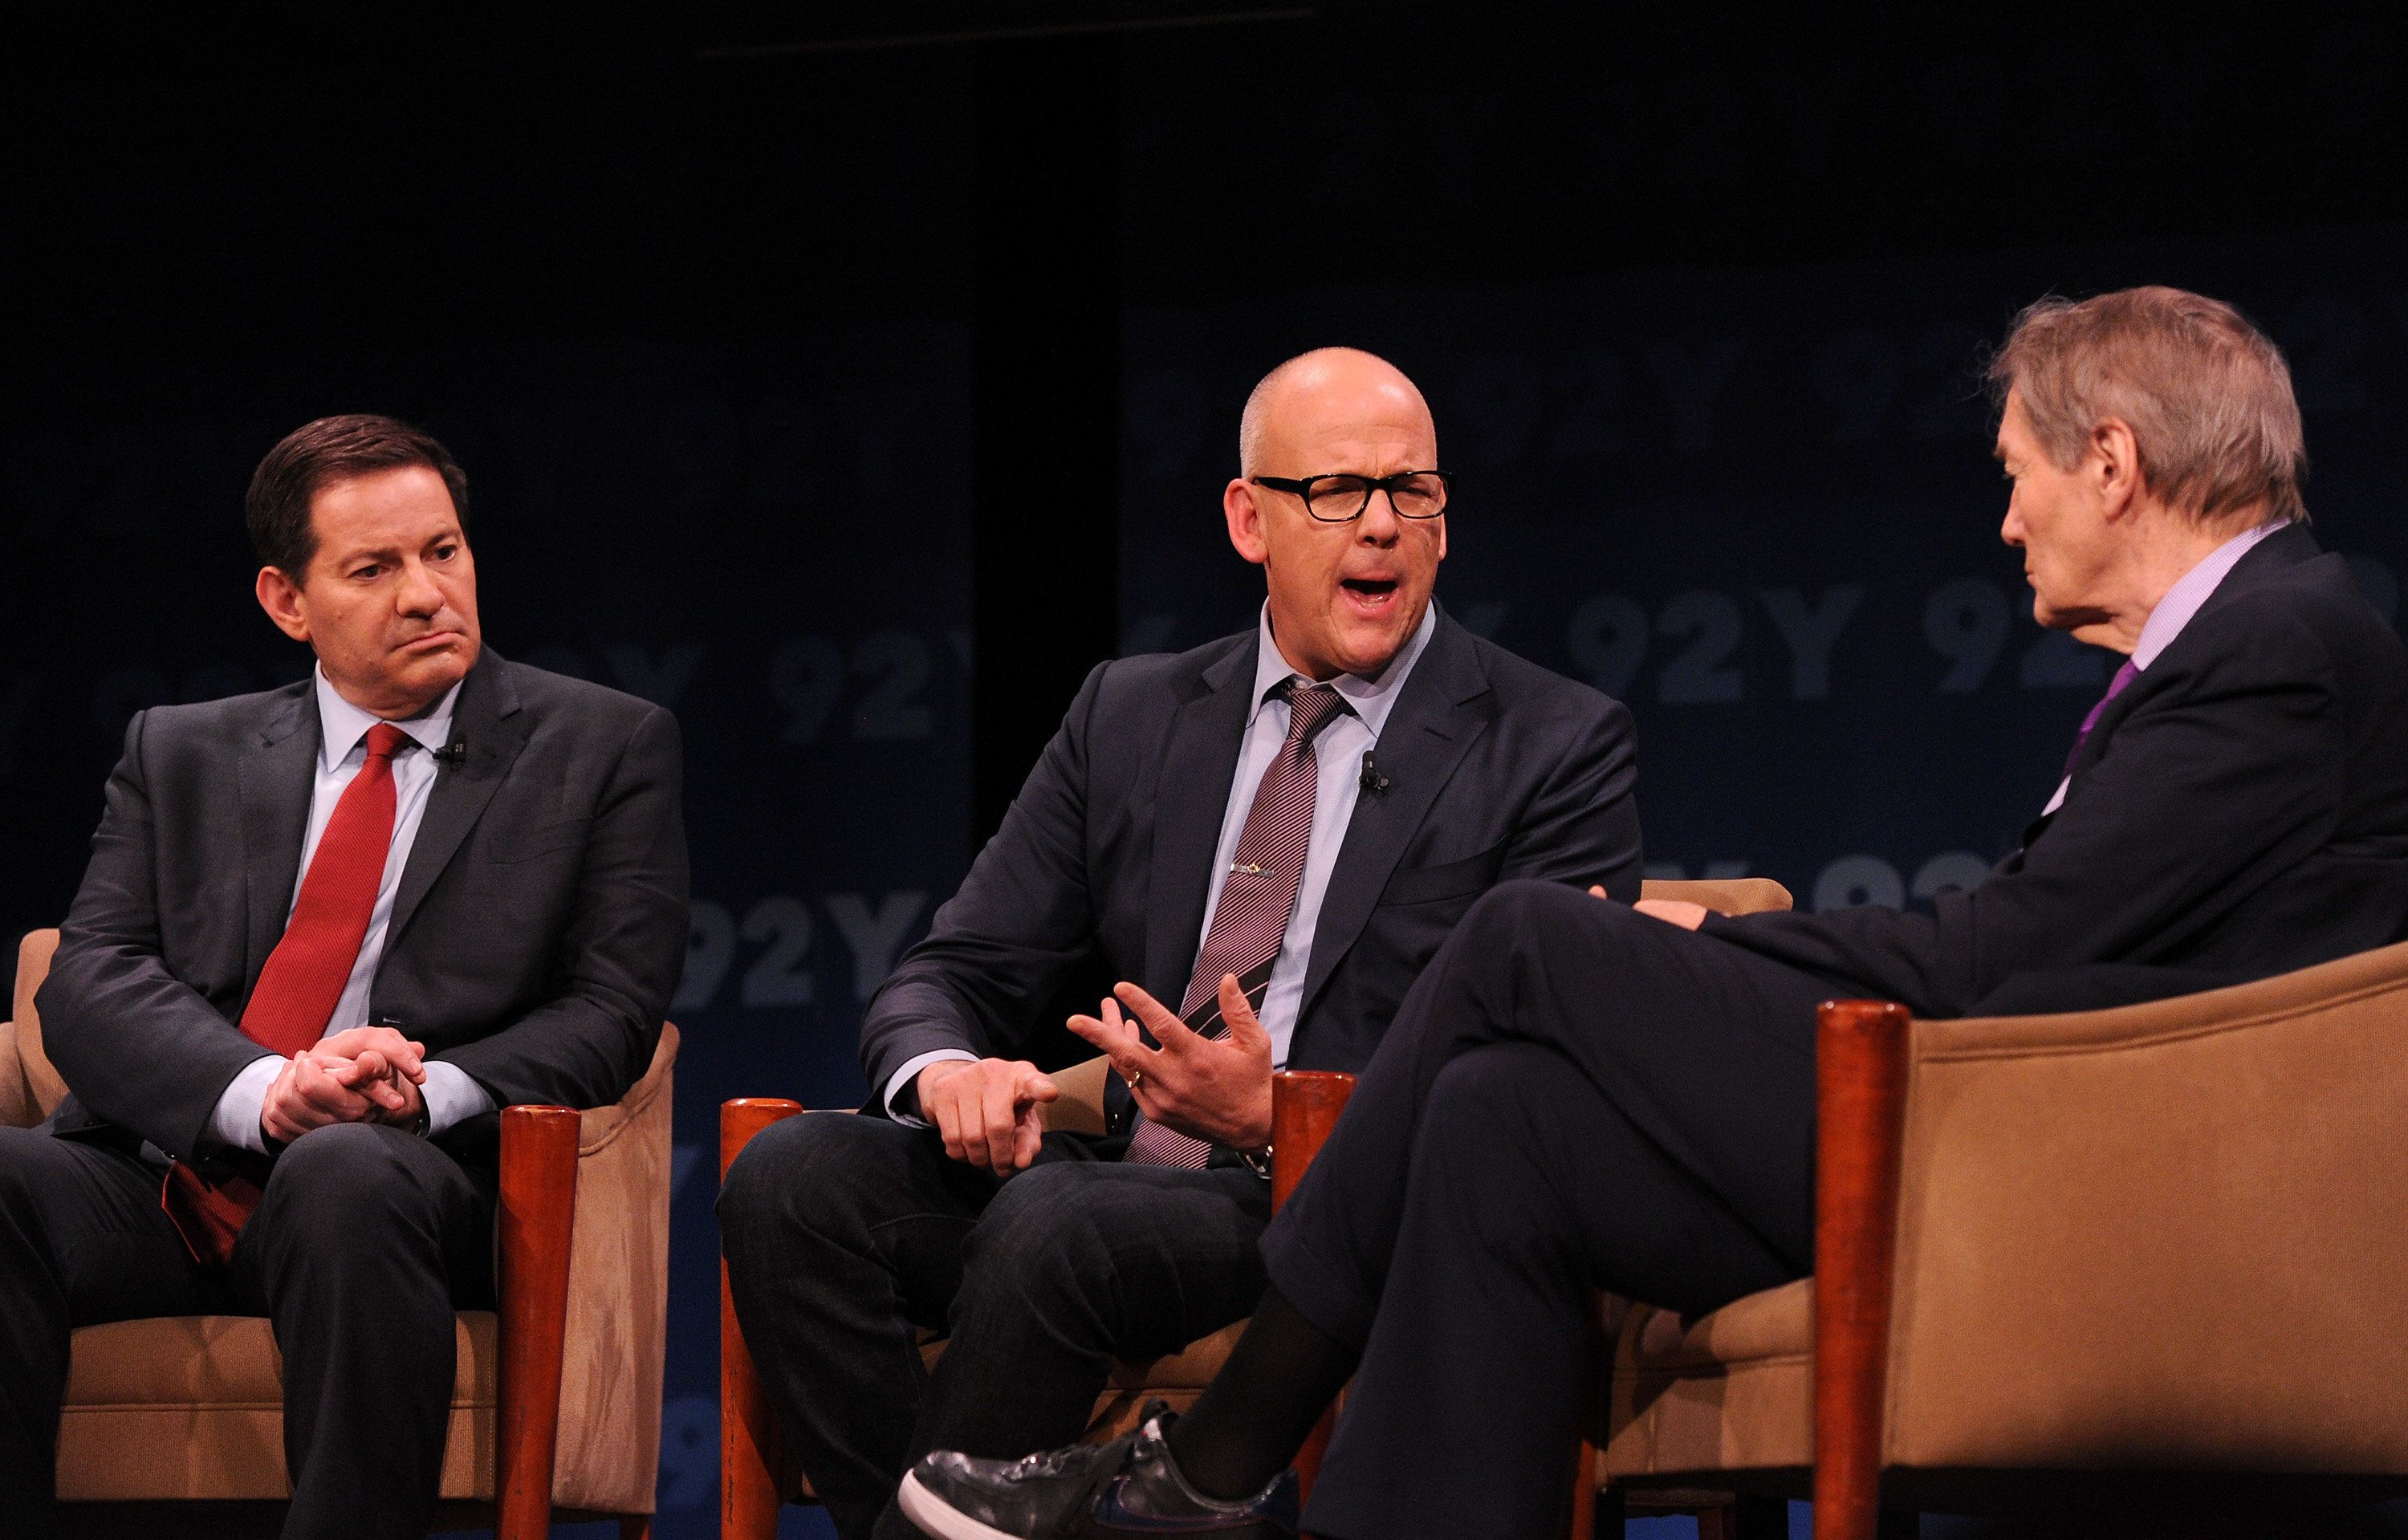 Mark Halpeirn and John Heilemann will be writing a book on 2016's chaotic campaign.